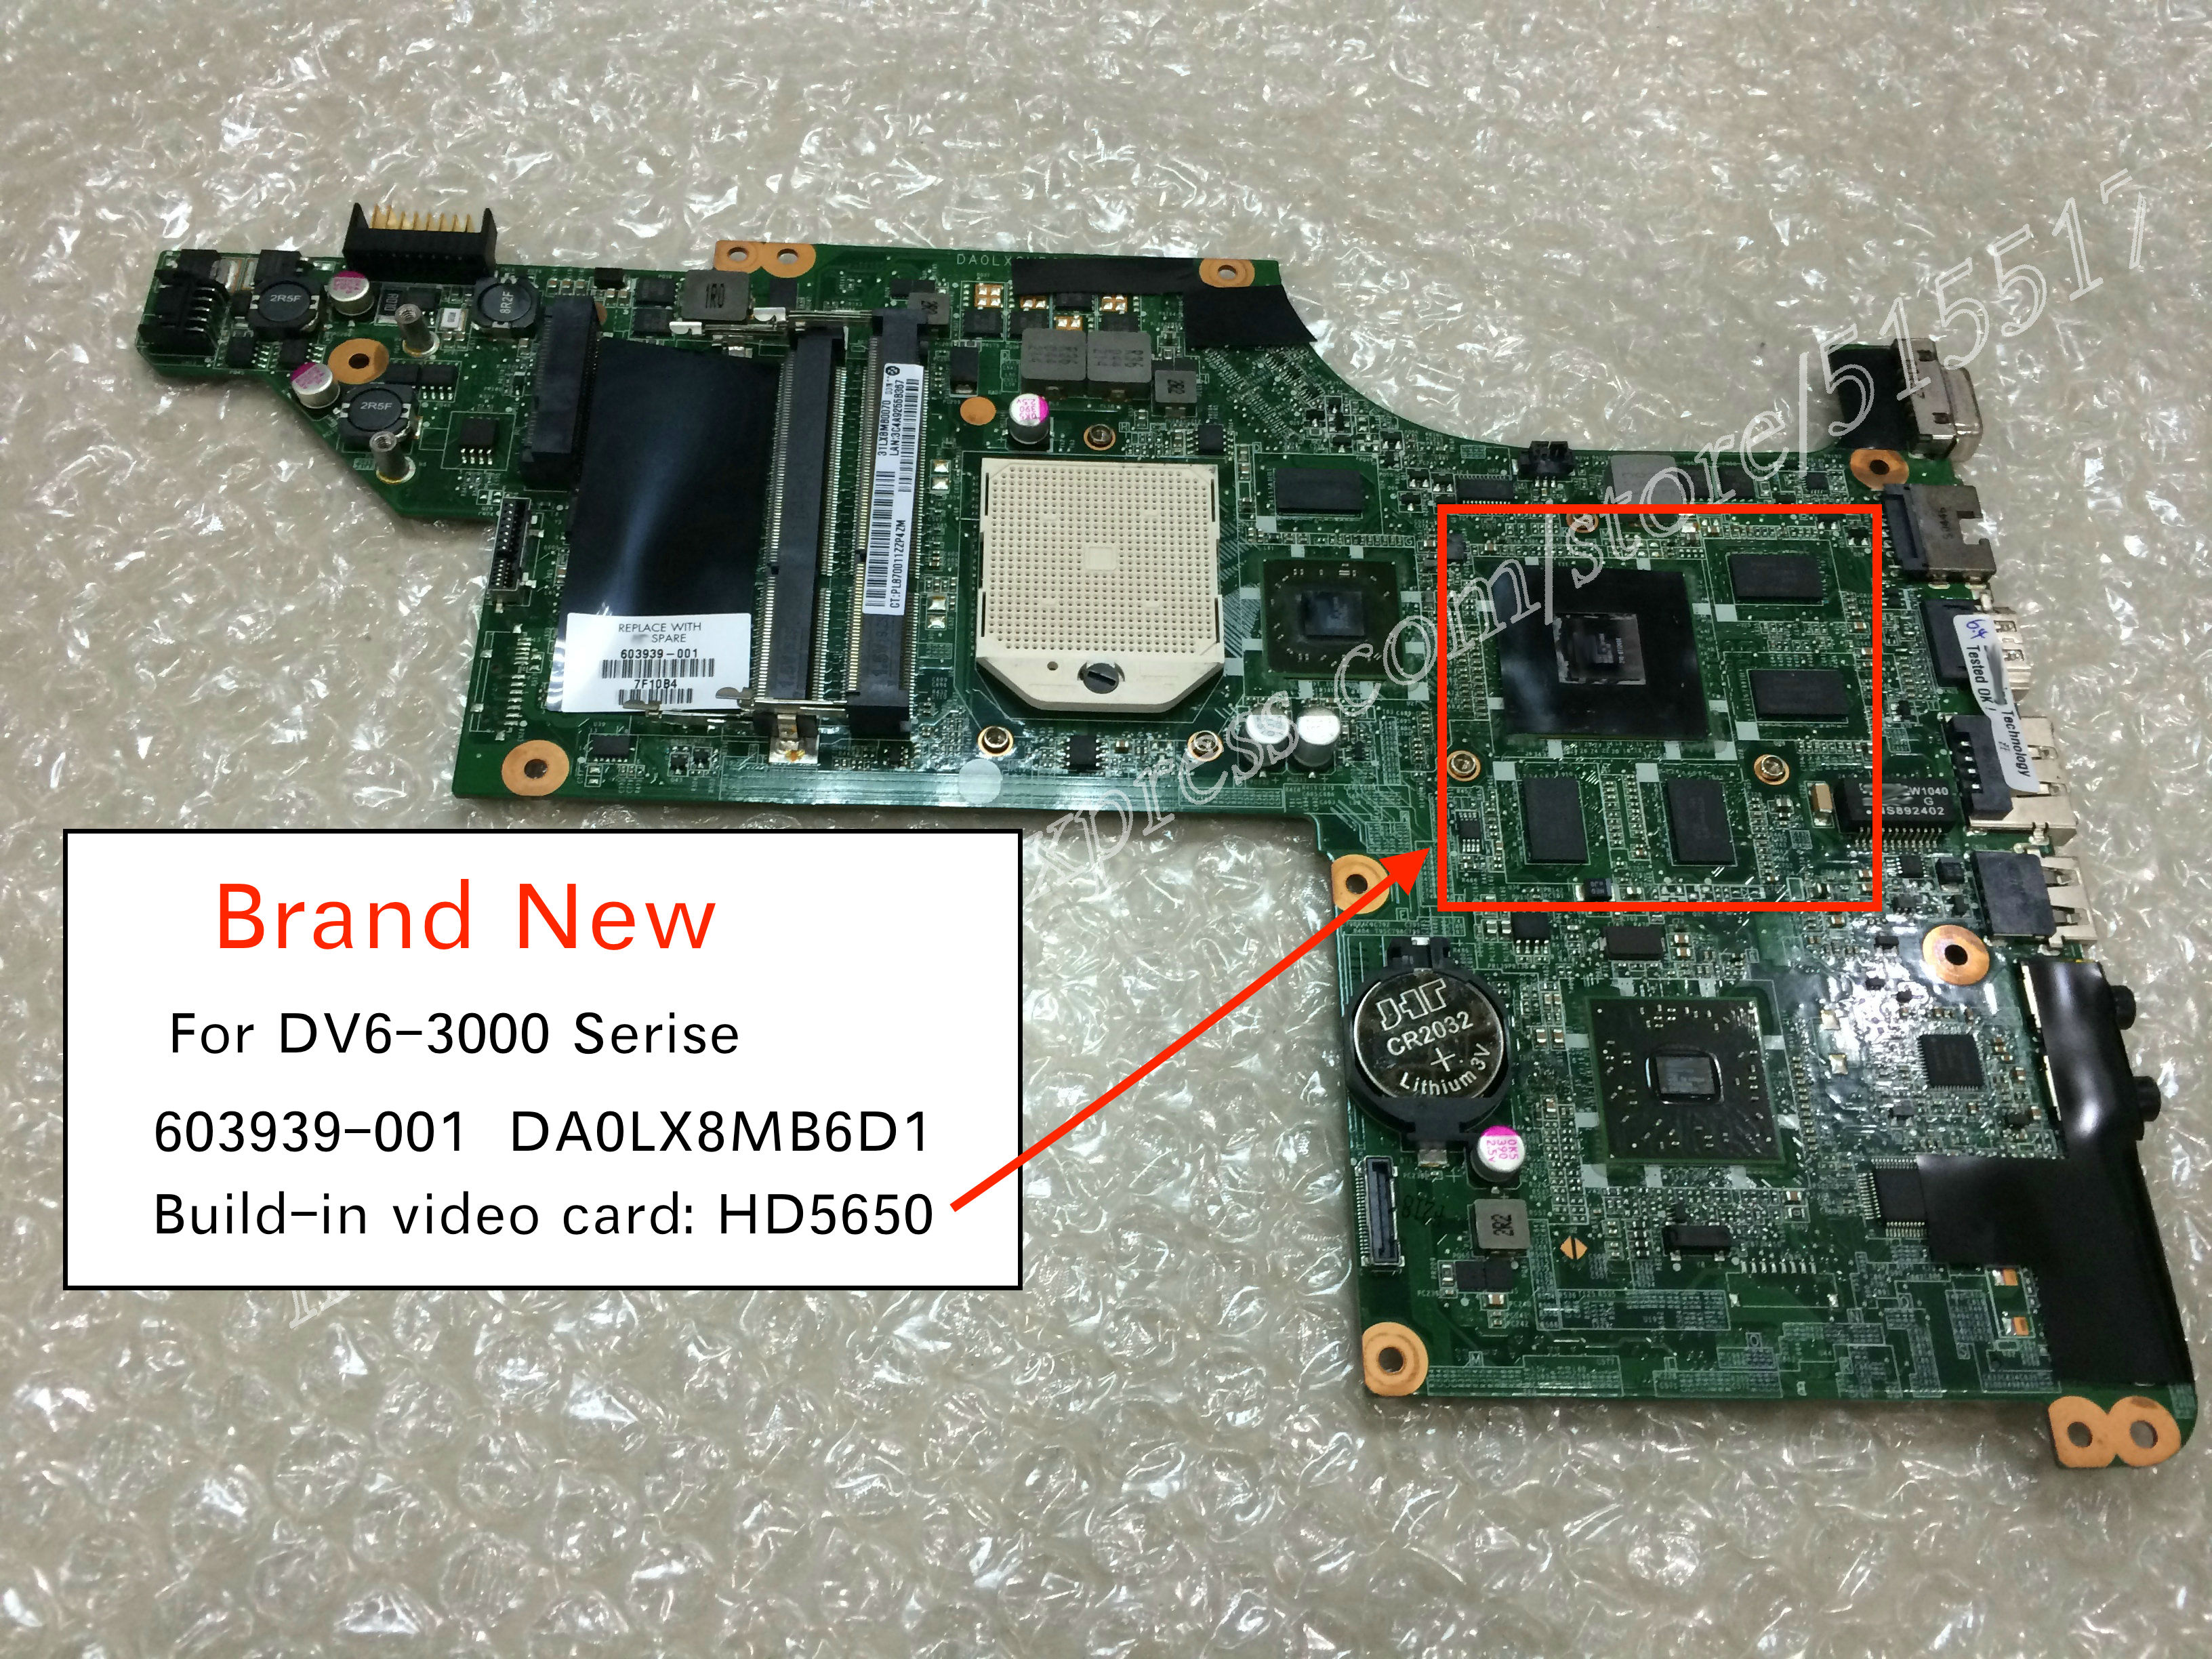 603939-001 632103-003 DA0LX8MB6D1 FOR HP PAVILION DV6 DV6-3000 LAPTOP MOTHERBOARD HD 5650 Graphics